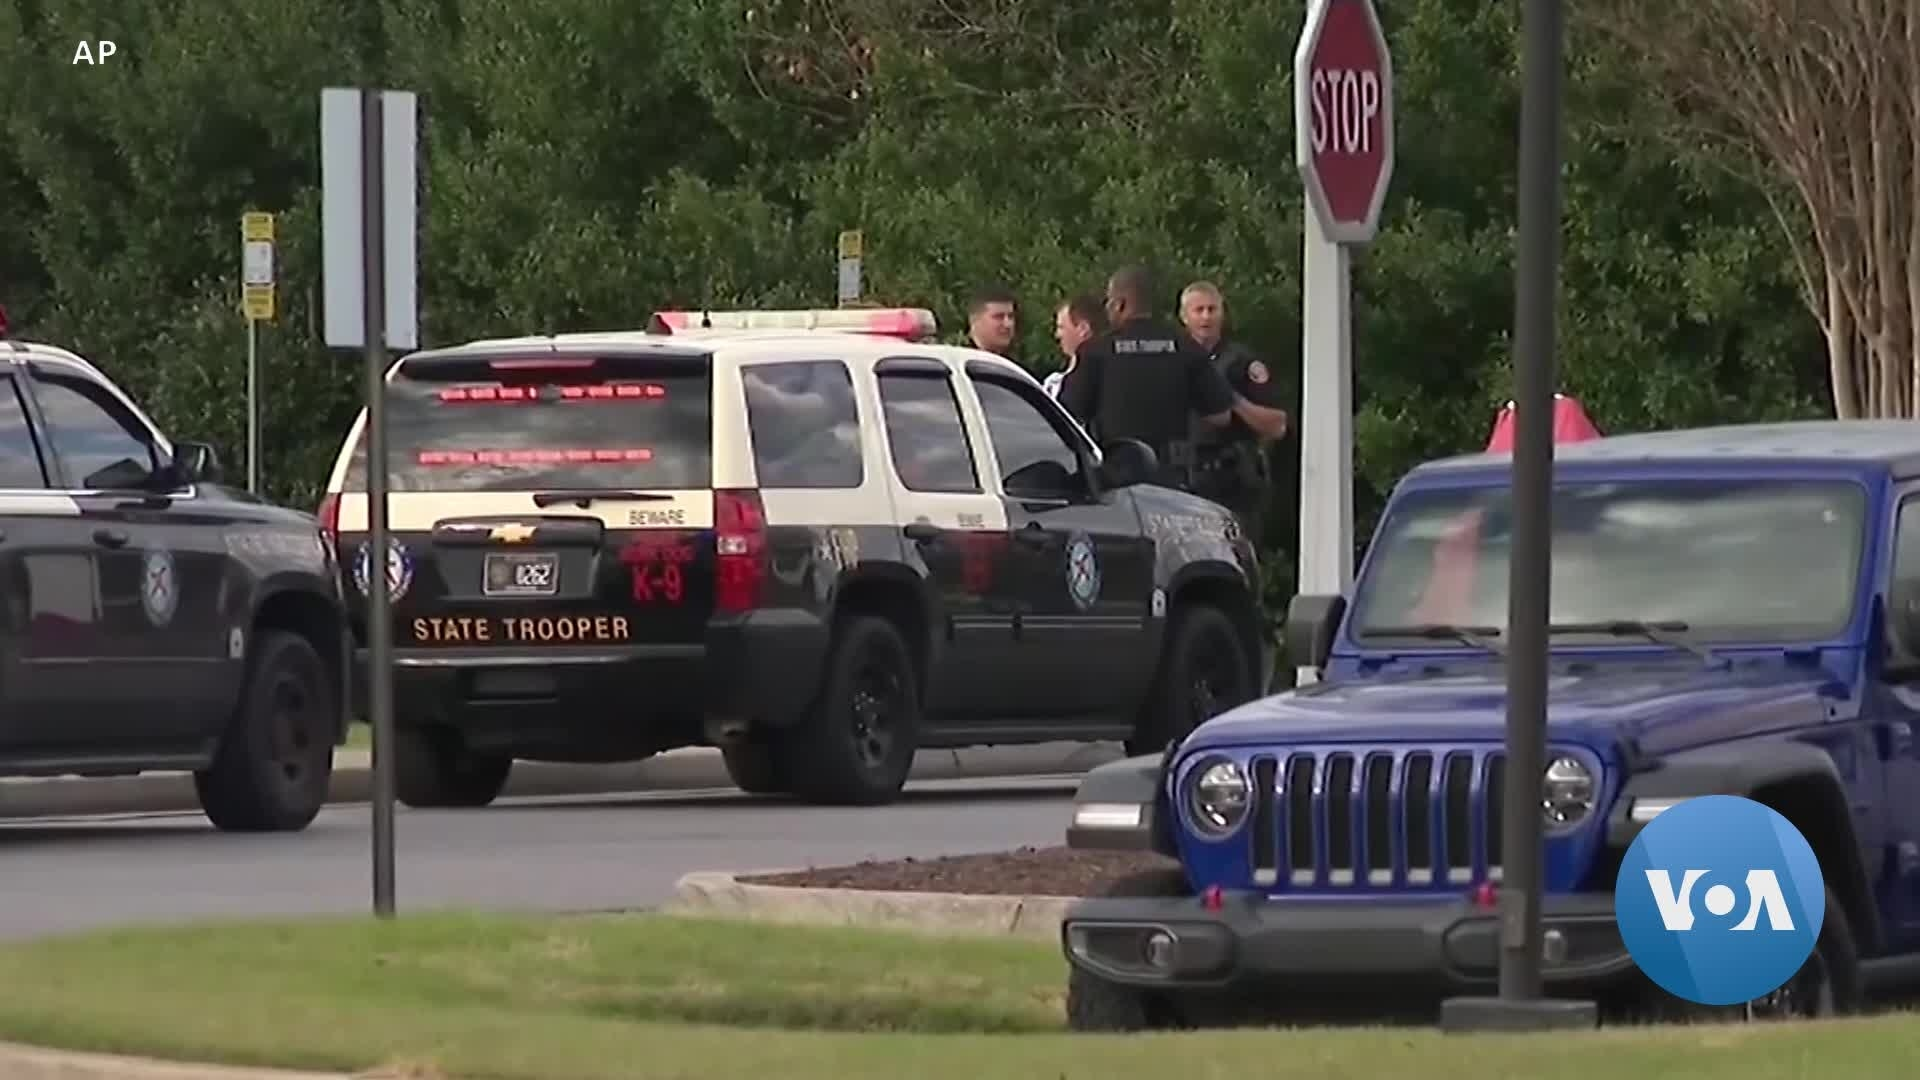 Four Dead in Shooting Attack at Florida Military Base